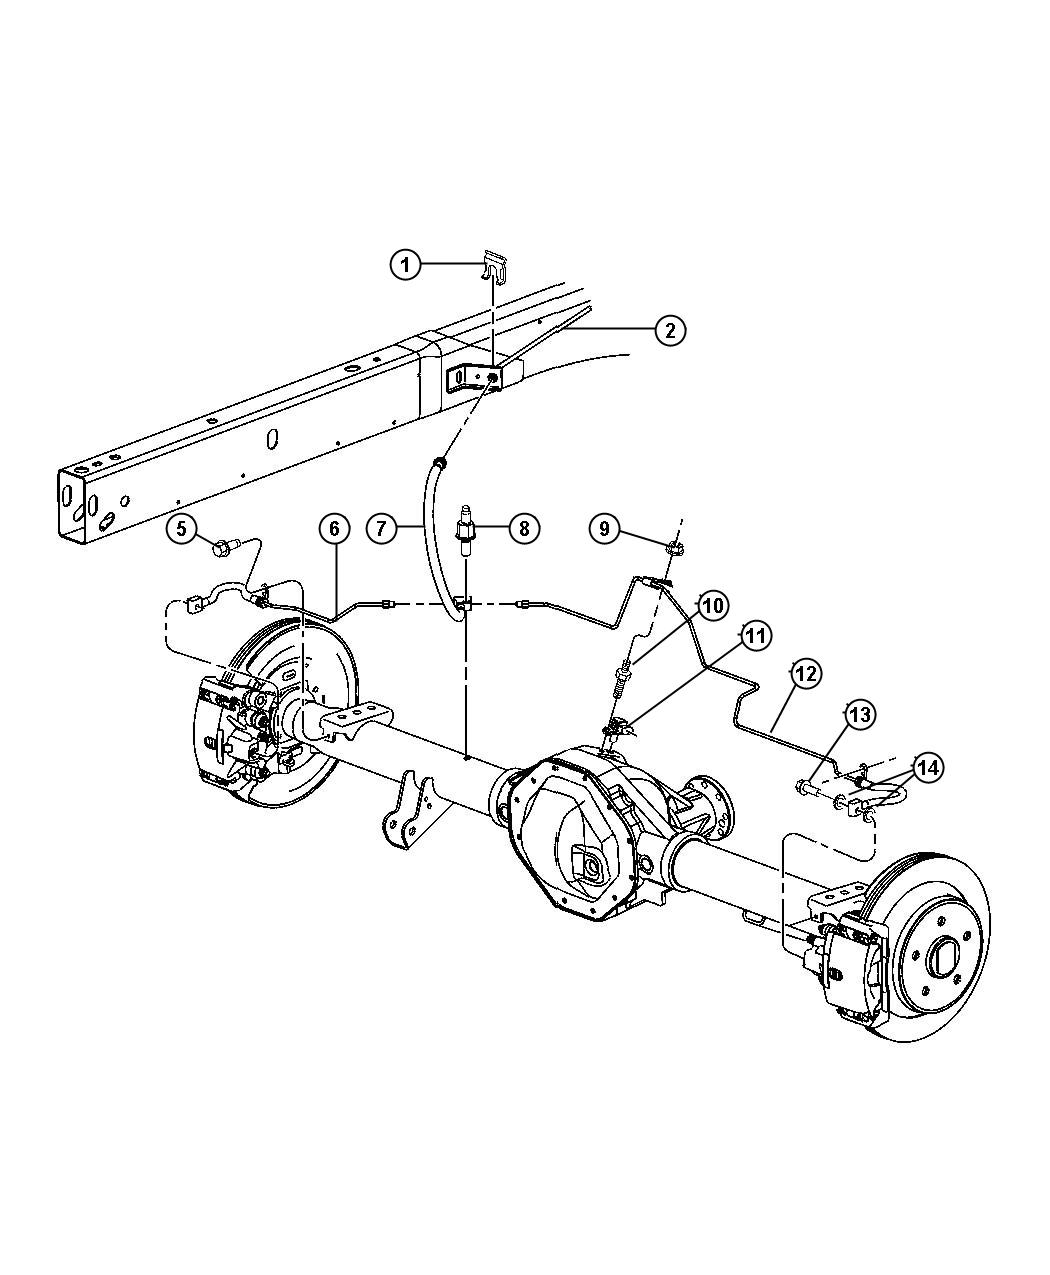 Dodge Ram Parking Brake Diagram Sketch Coloring Page